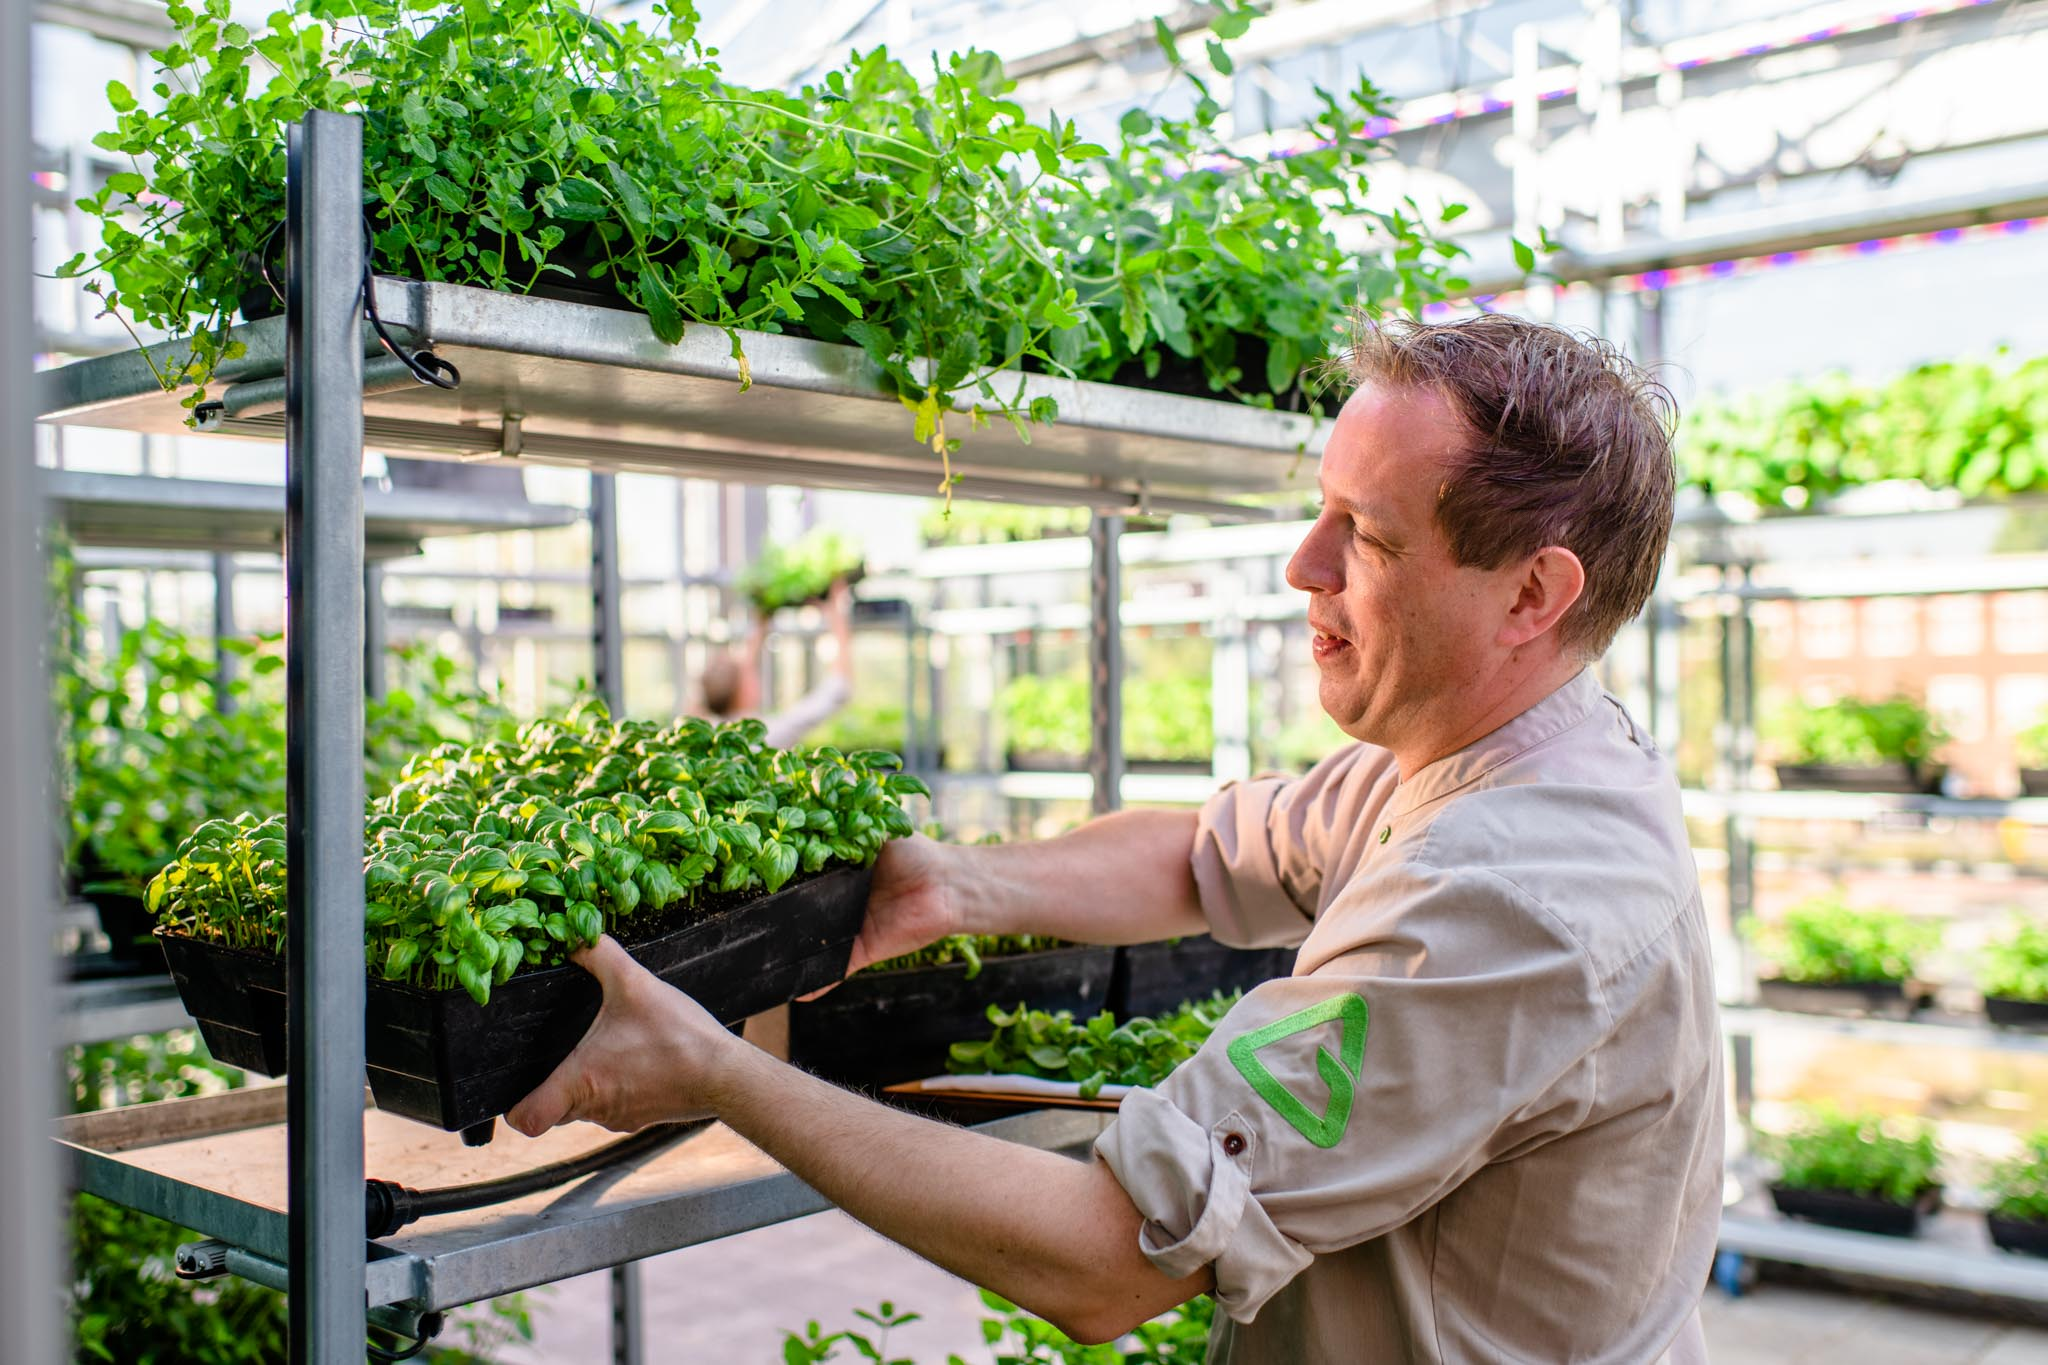 The Green House - Afdeling Beeld